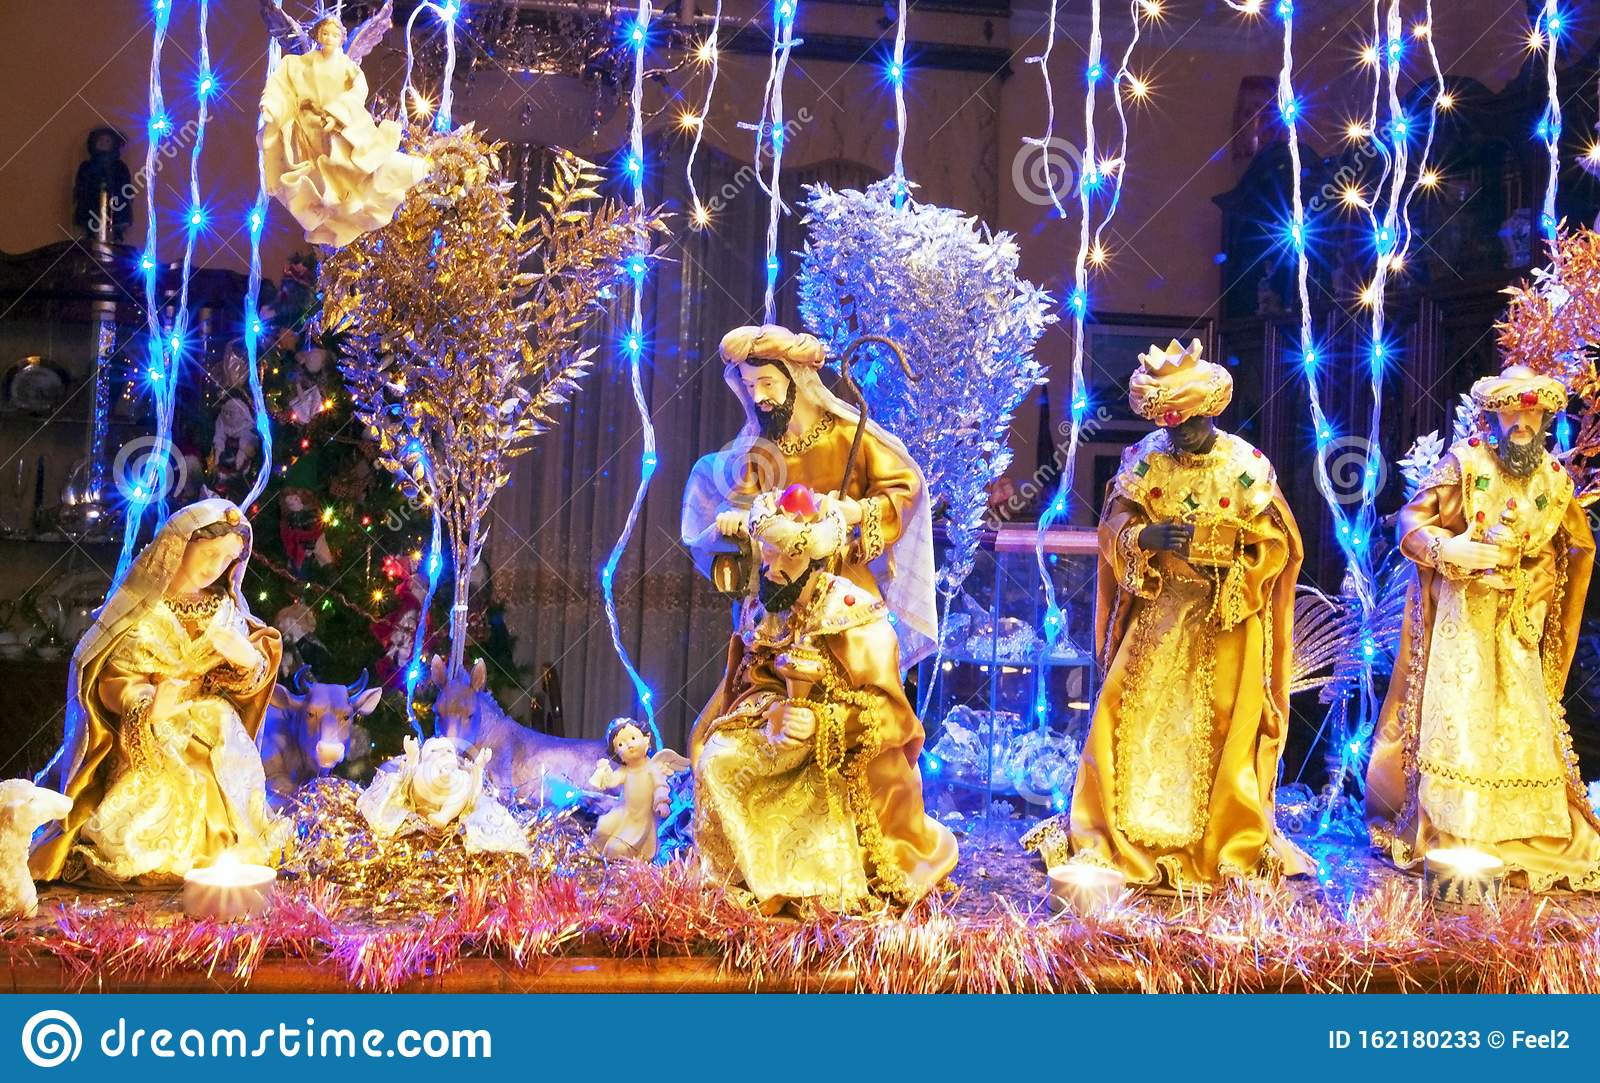 Christmas Decorations At Home Stock Image Image Of Lights House 162180233